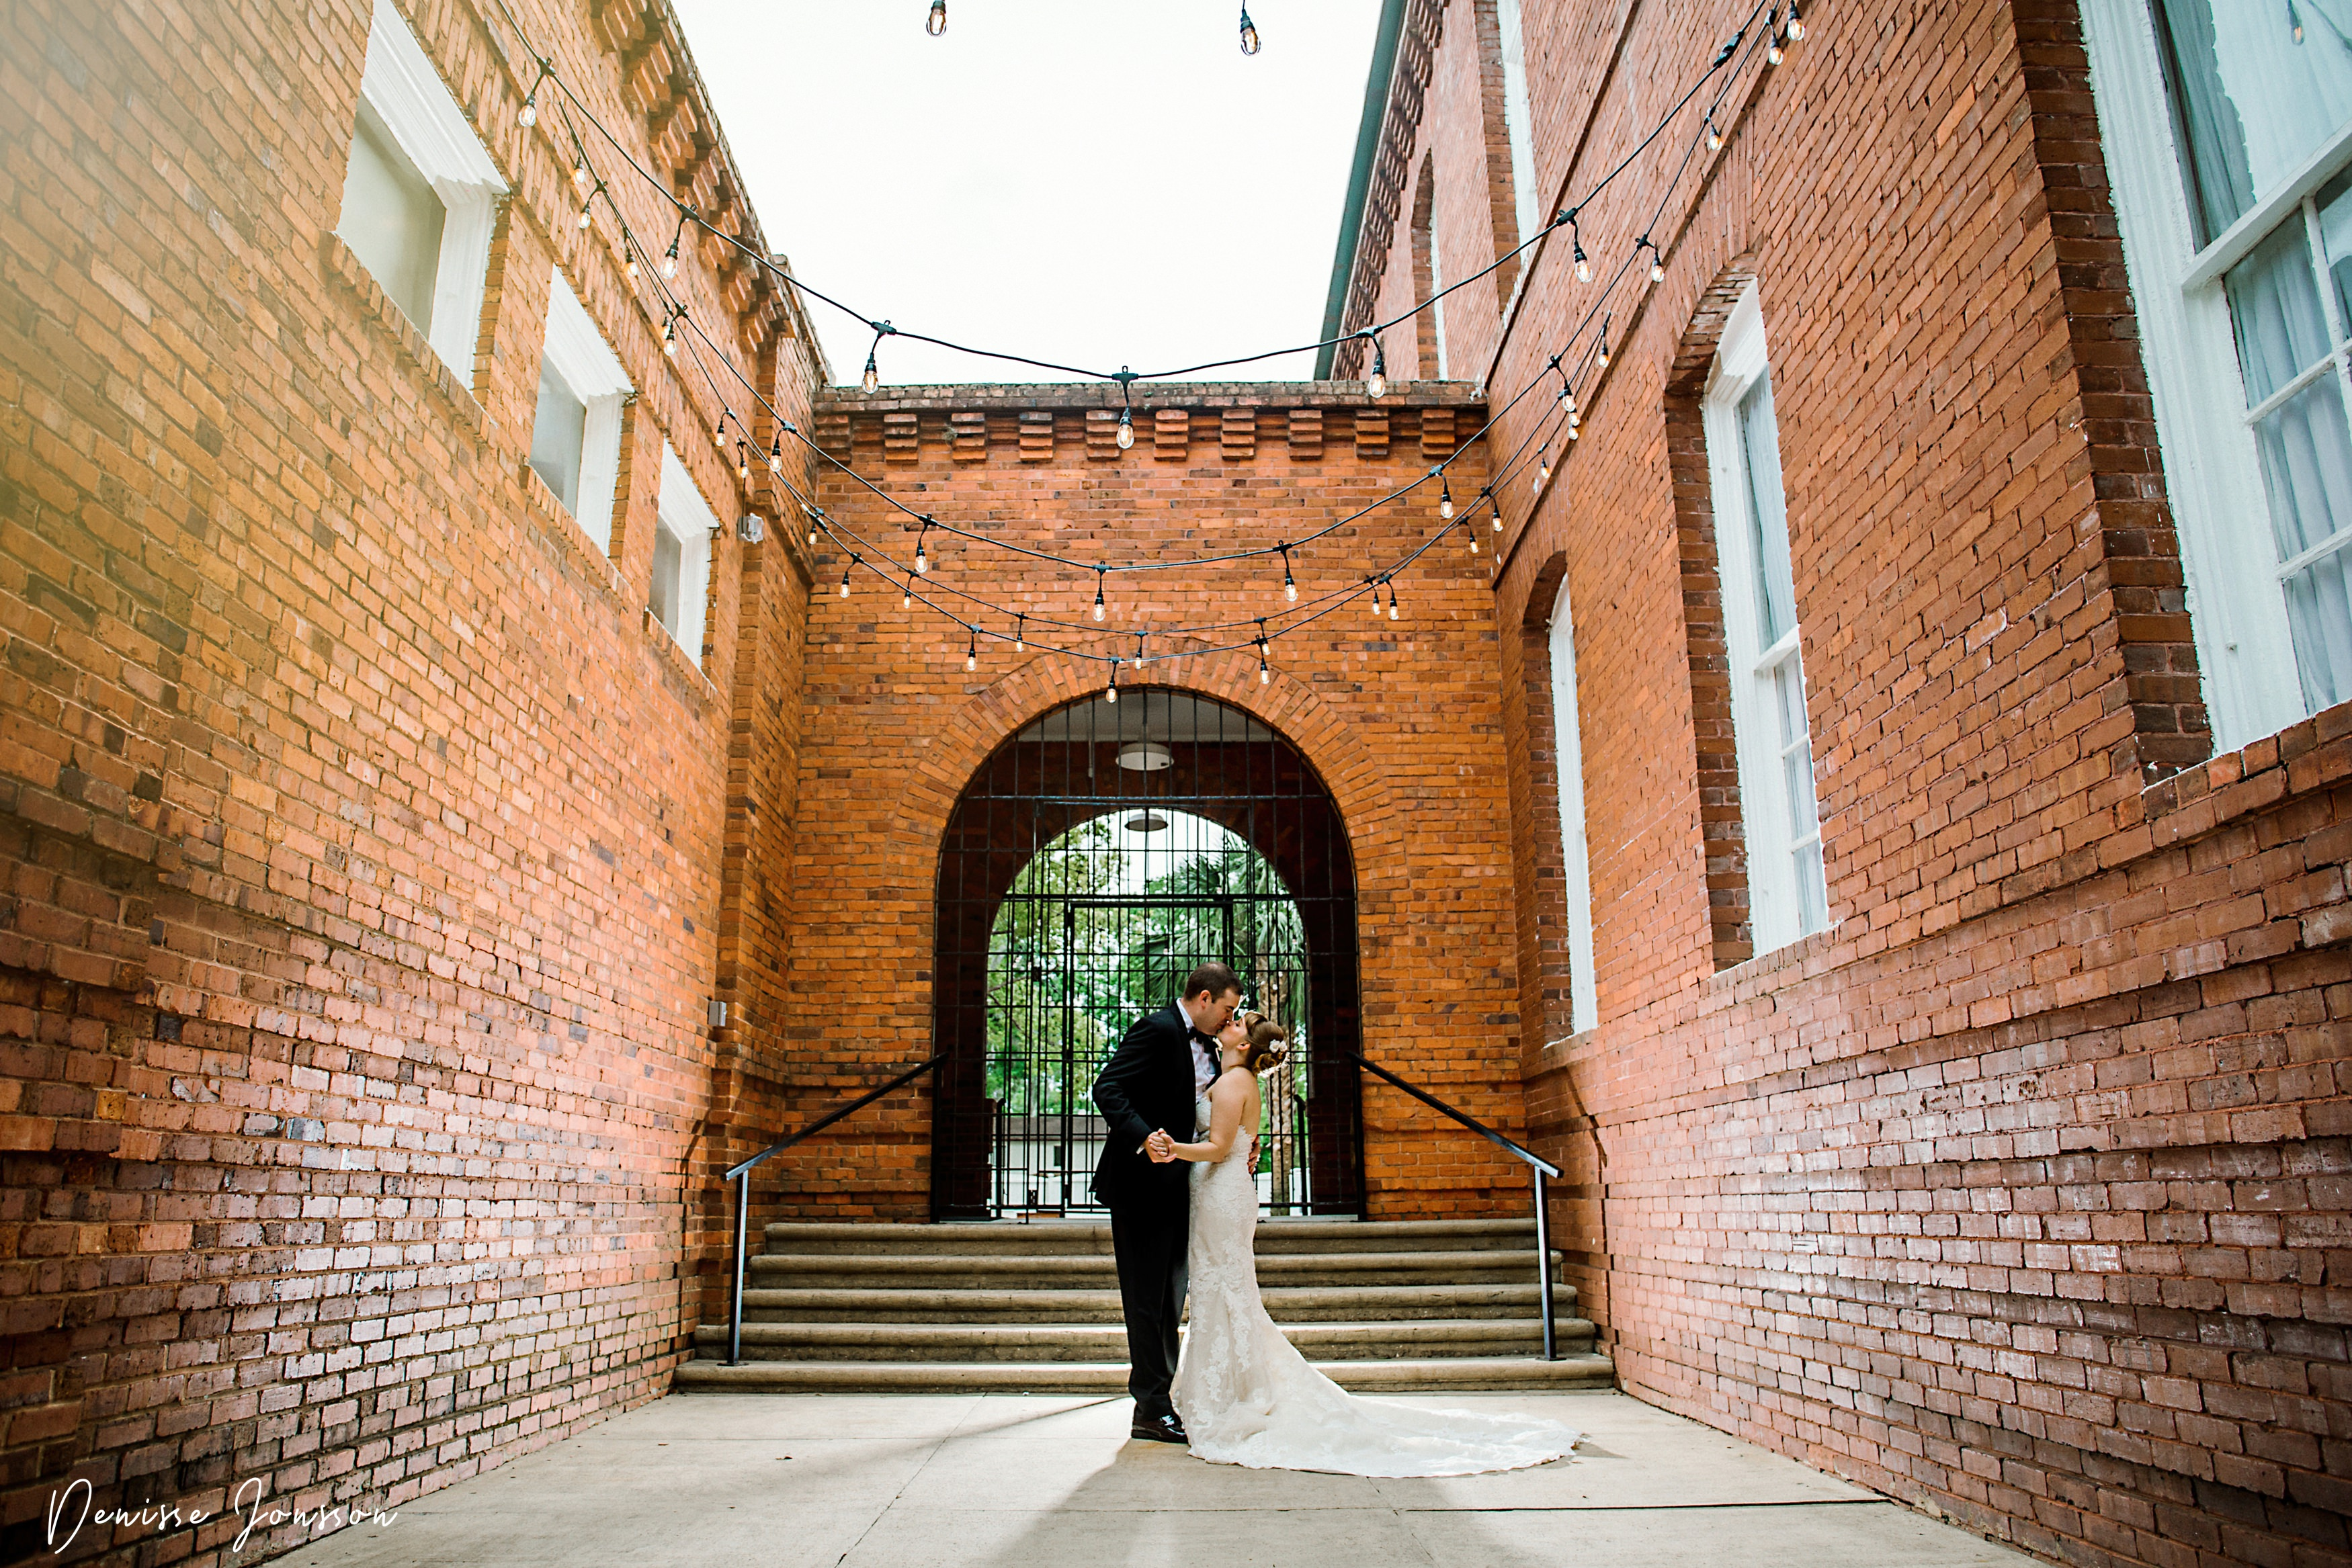 Kayli and William's Classic southern Charm Wedding at Venue 1902 (Preservation hall)